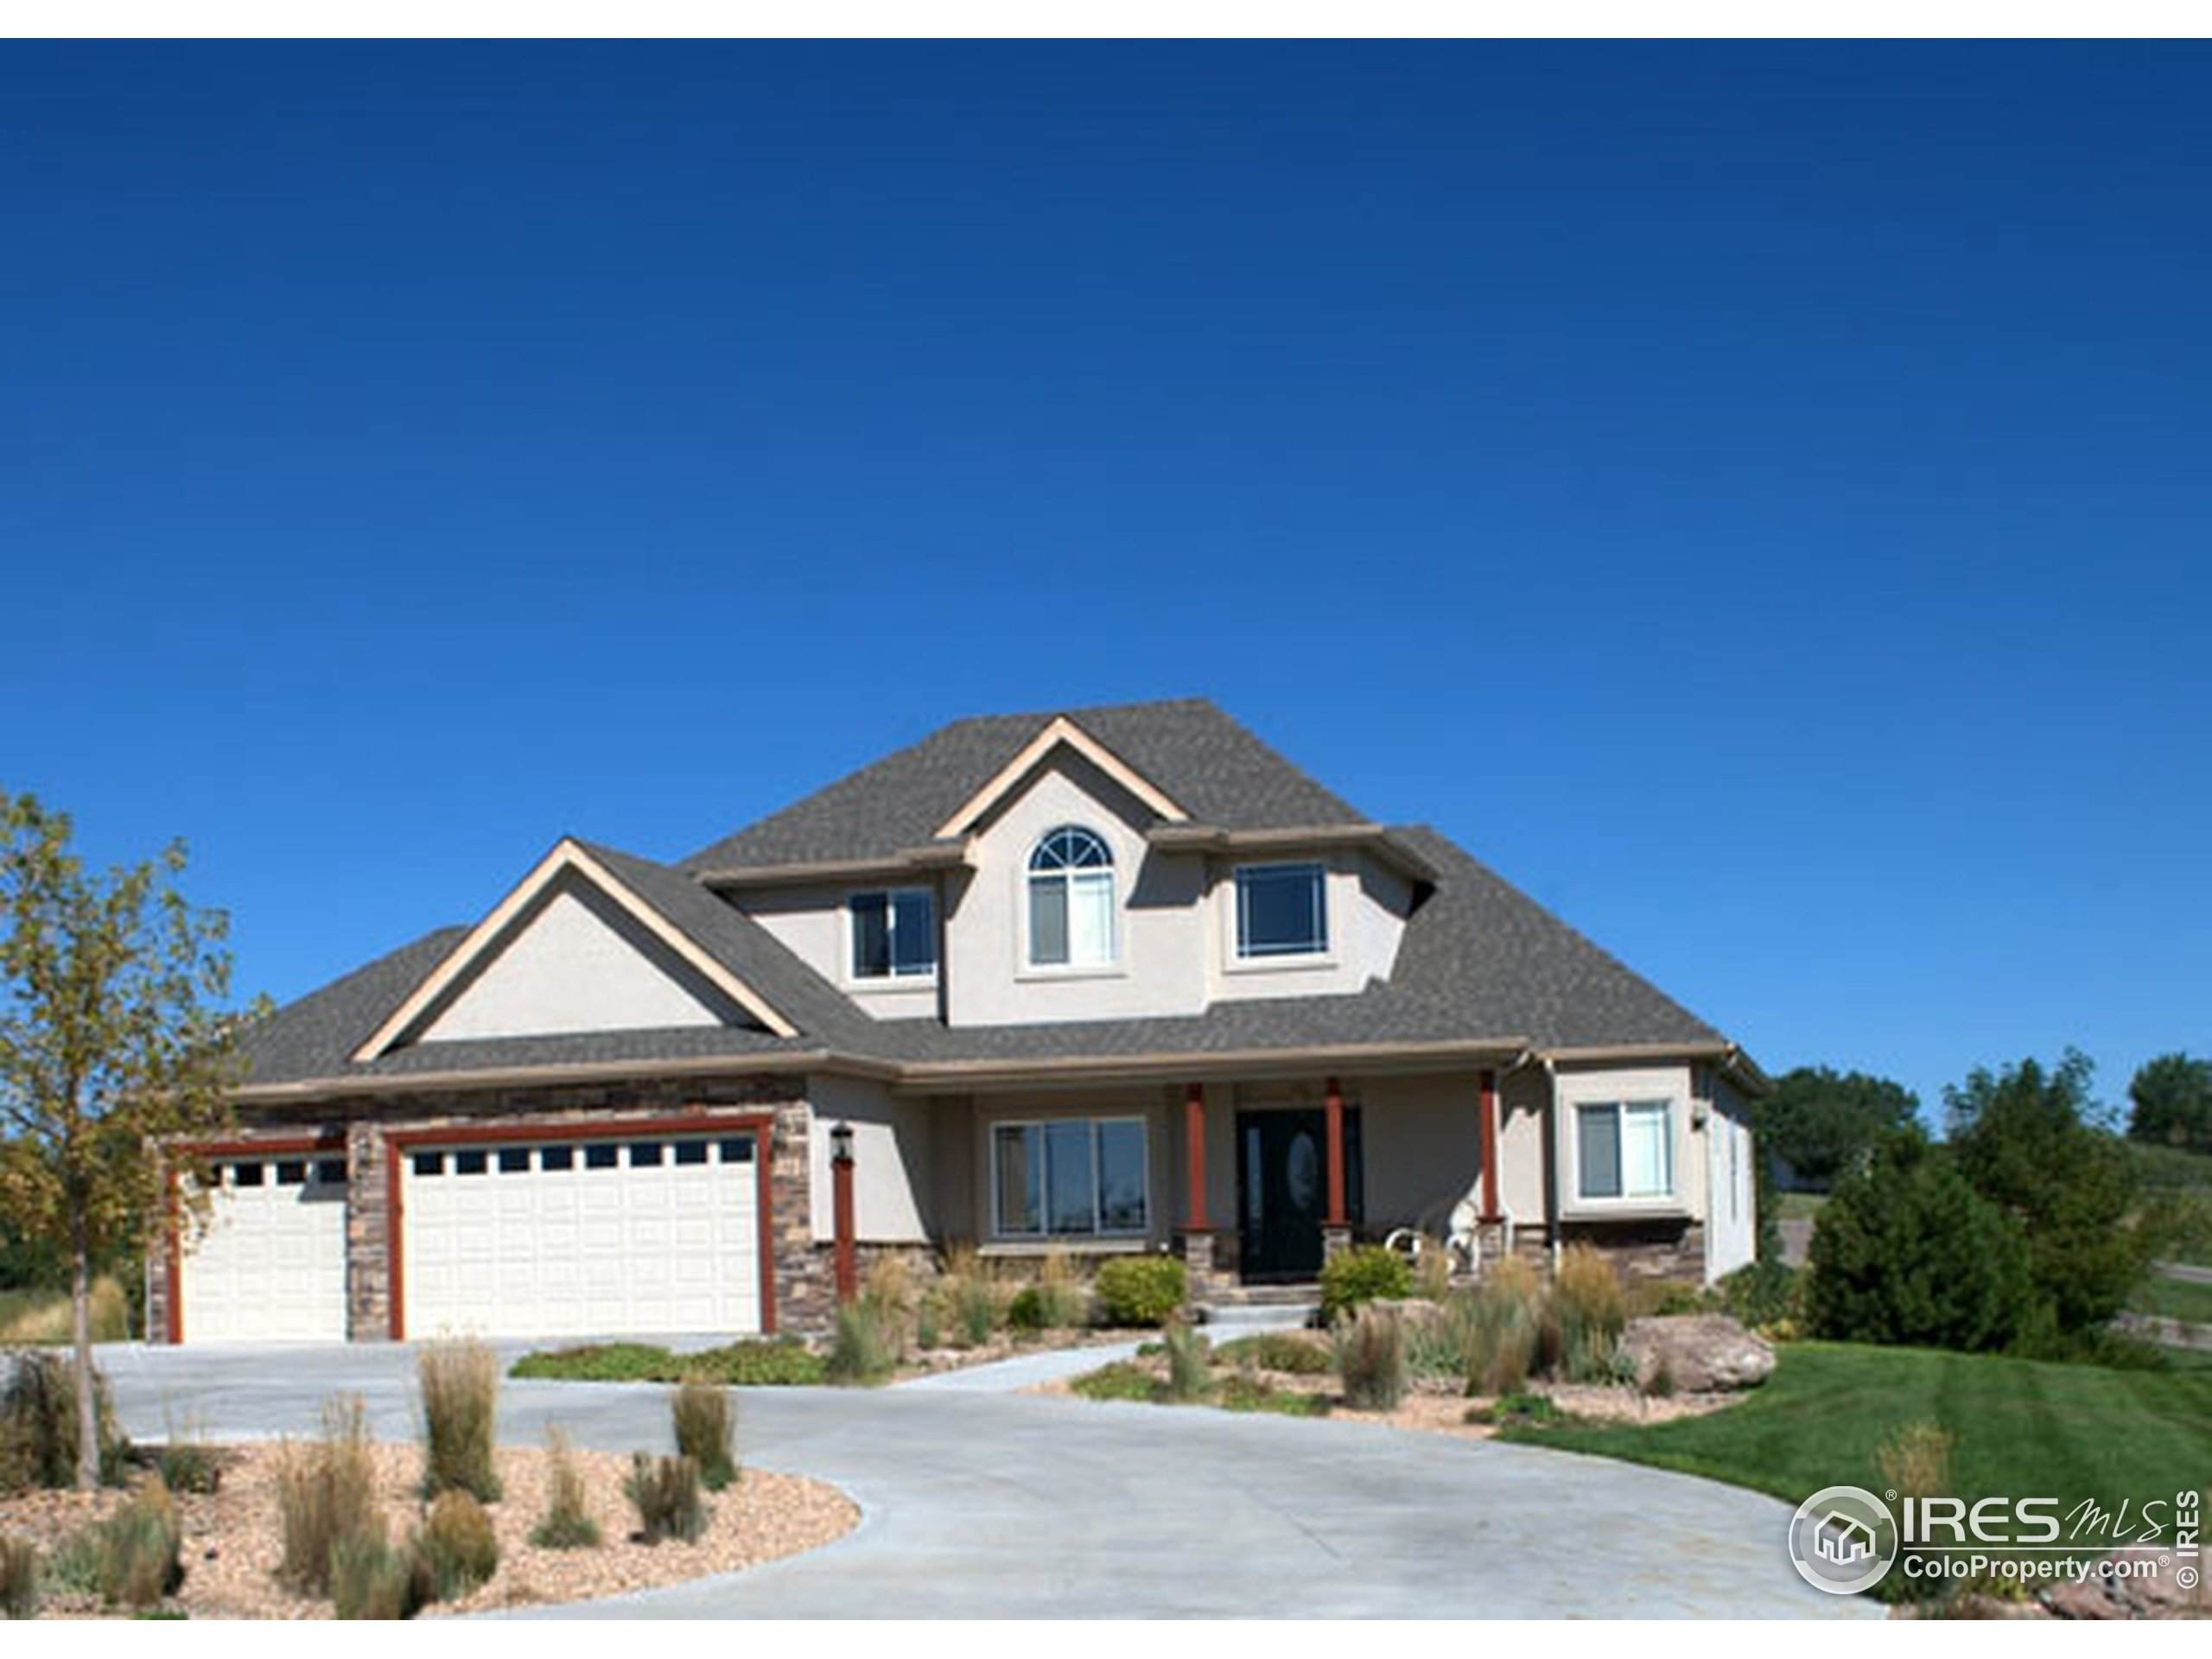 929 38th Ave Ct #103, Greeley, CO 80634 (#941750) :: The Griffith Home Team